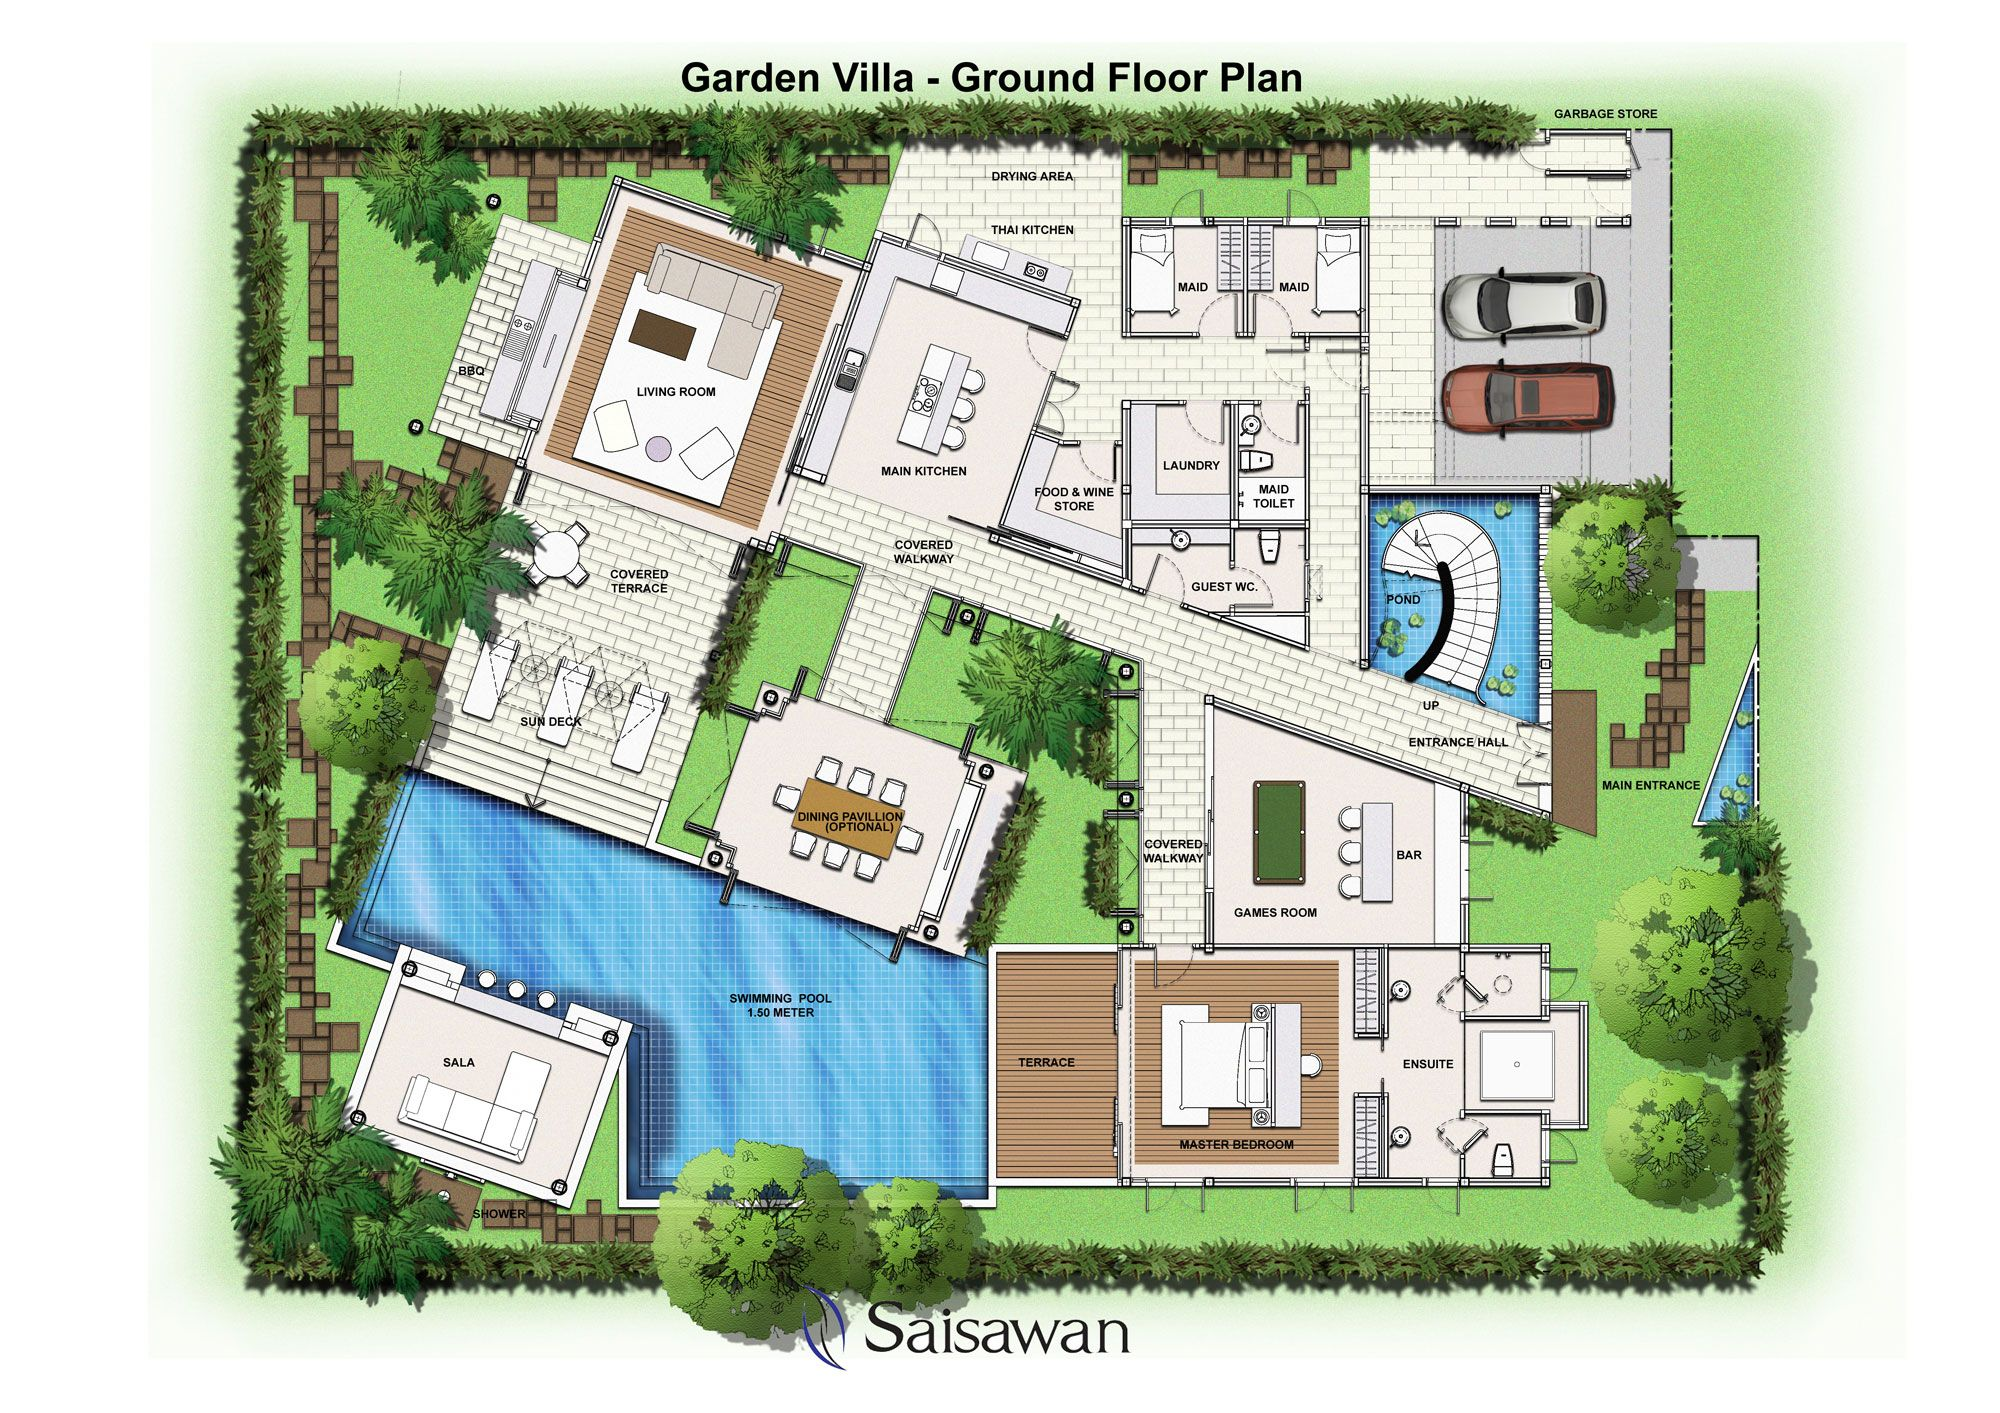 Saisawan garden villas ground floor plan house plans for Home garden layout